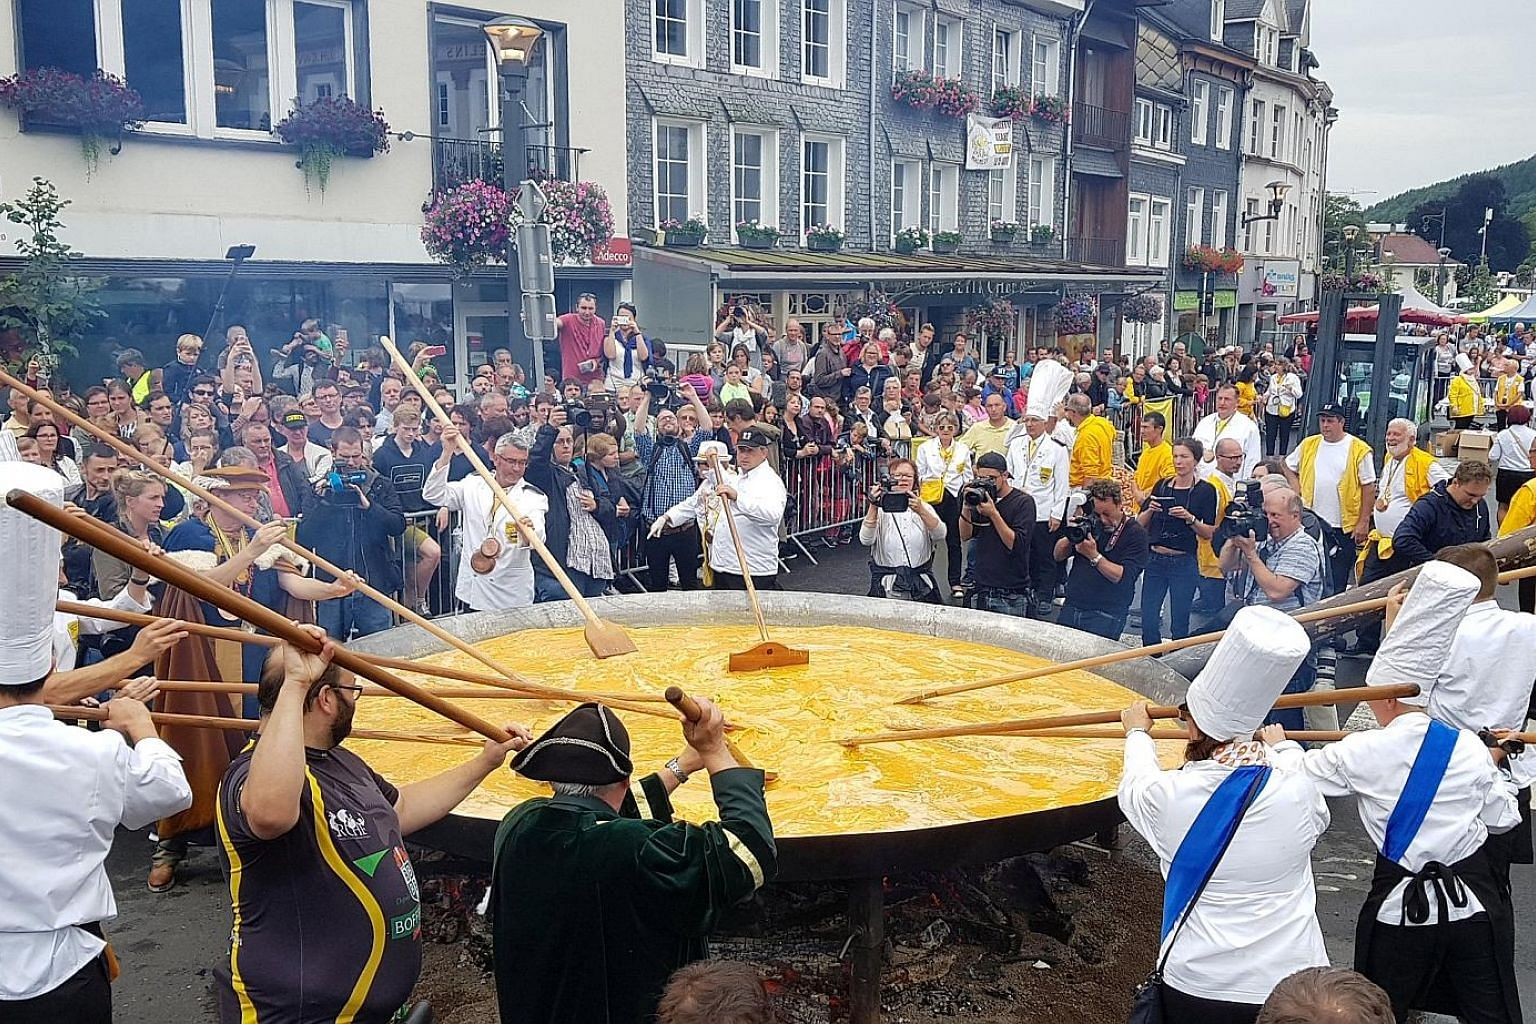 Members of The World Fraternity of Knights of the Giant Omelette, created in 1973, honouring their 22-year-old tradition of making a giant omelette despite an egg contamination scare. They cooked 10,000 eggs in a 4m-wide pan over an open fire as musi